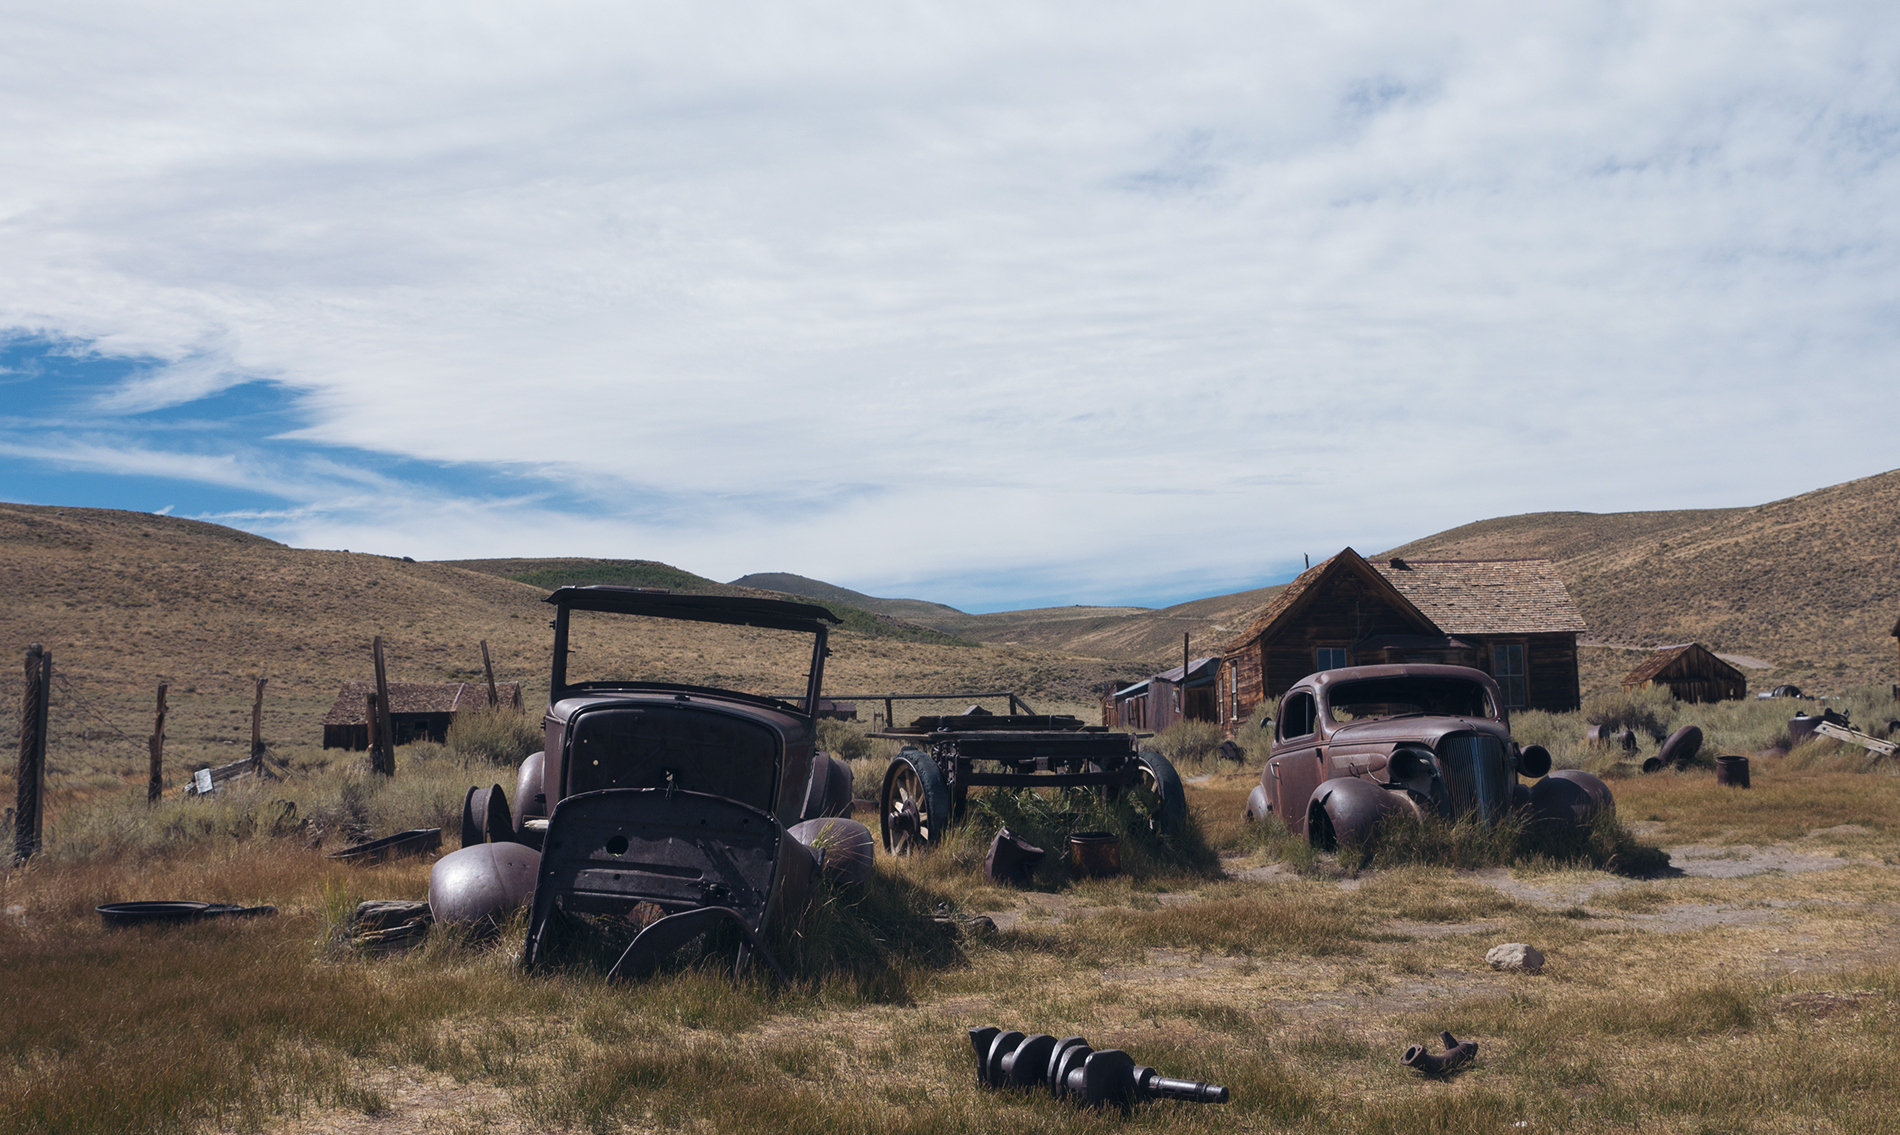 The cars left behind at Bodin. Copyright Hobo.Life